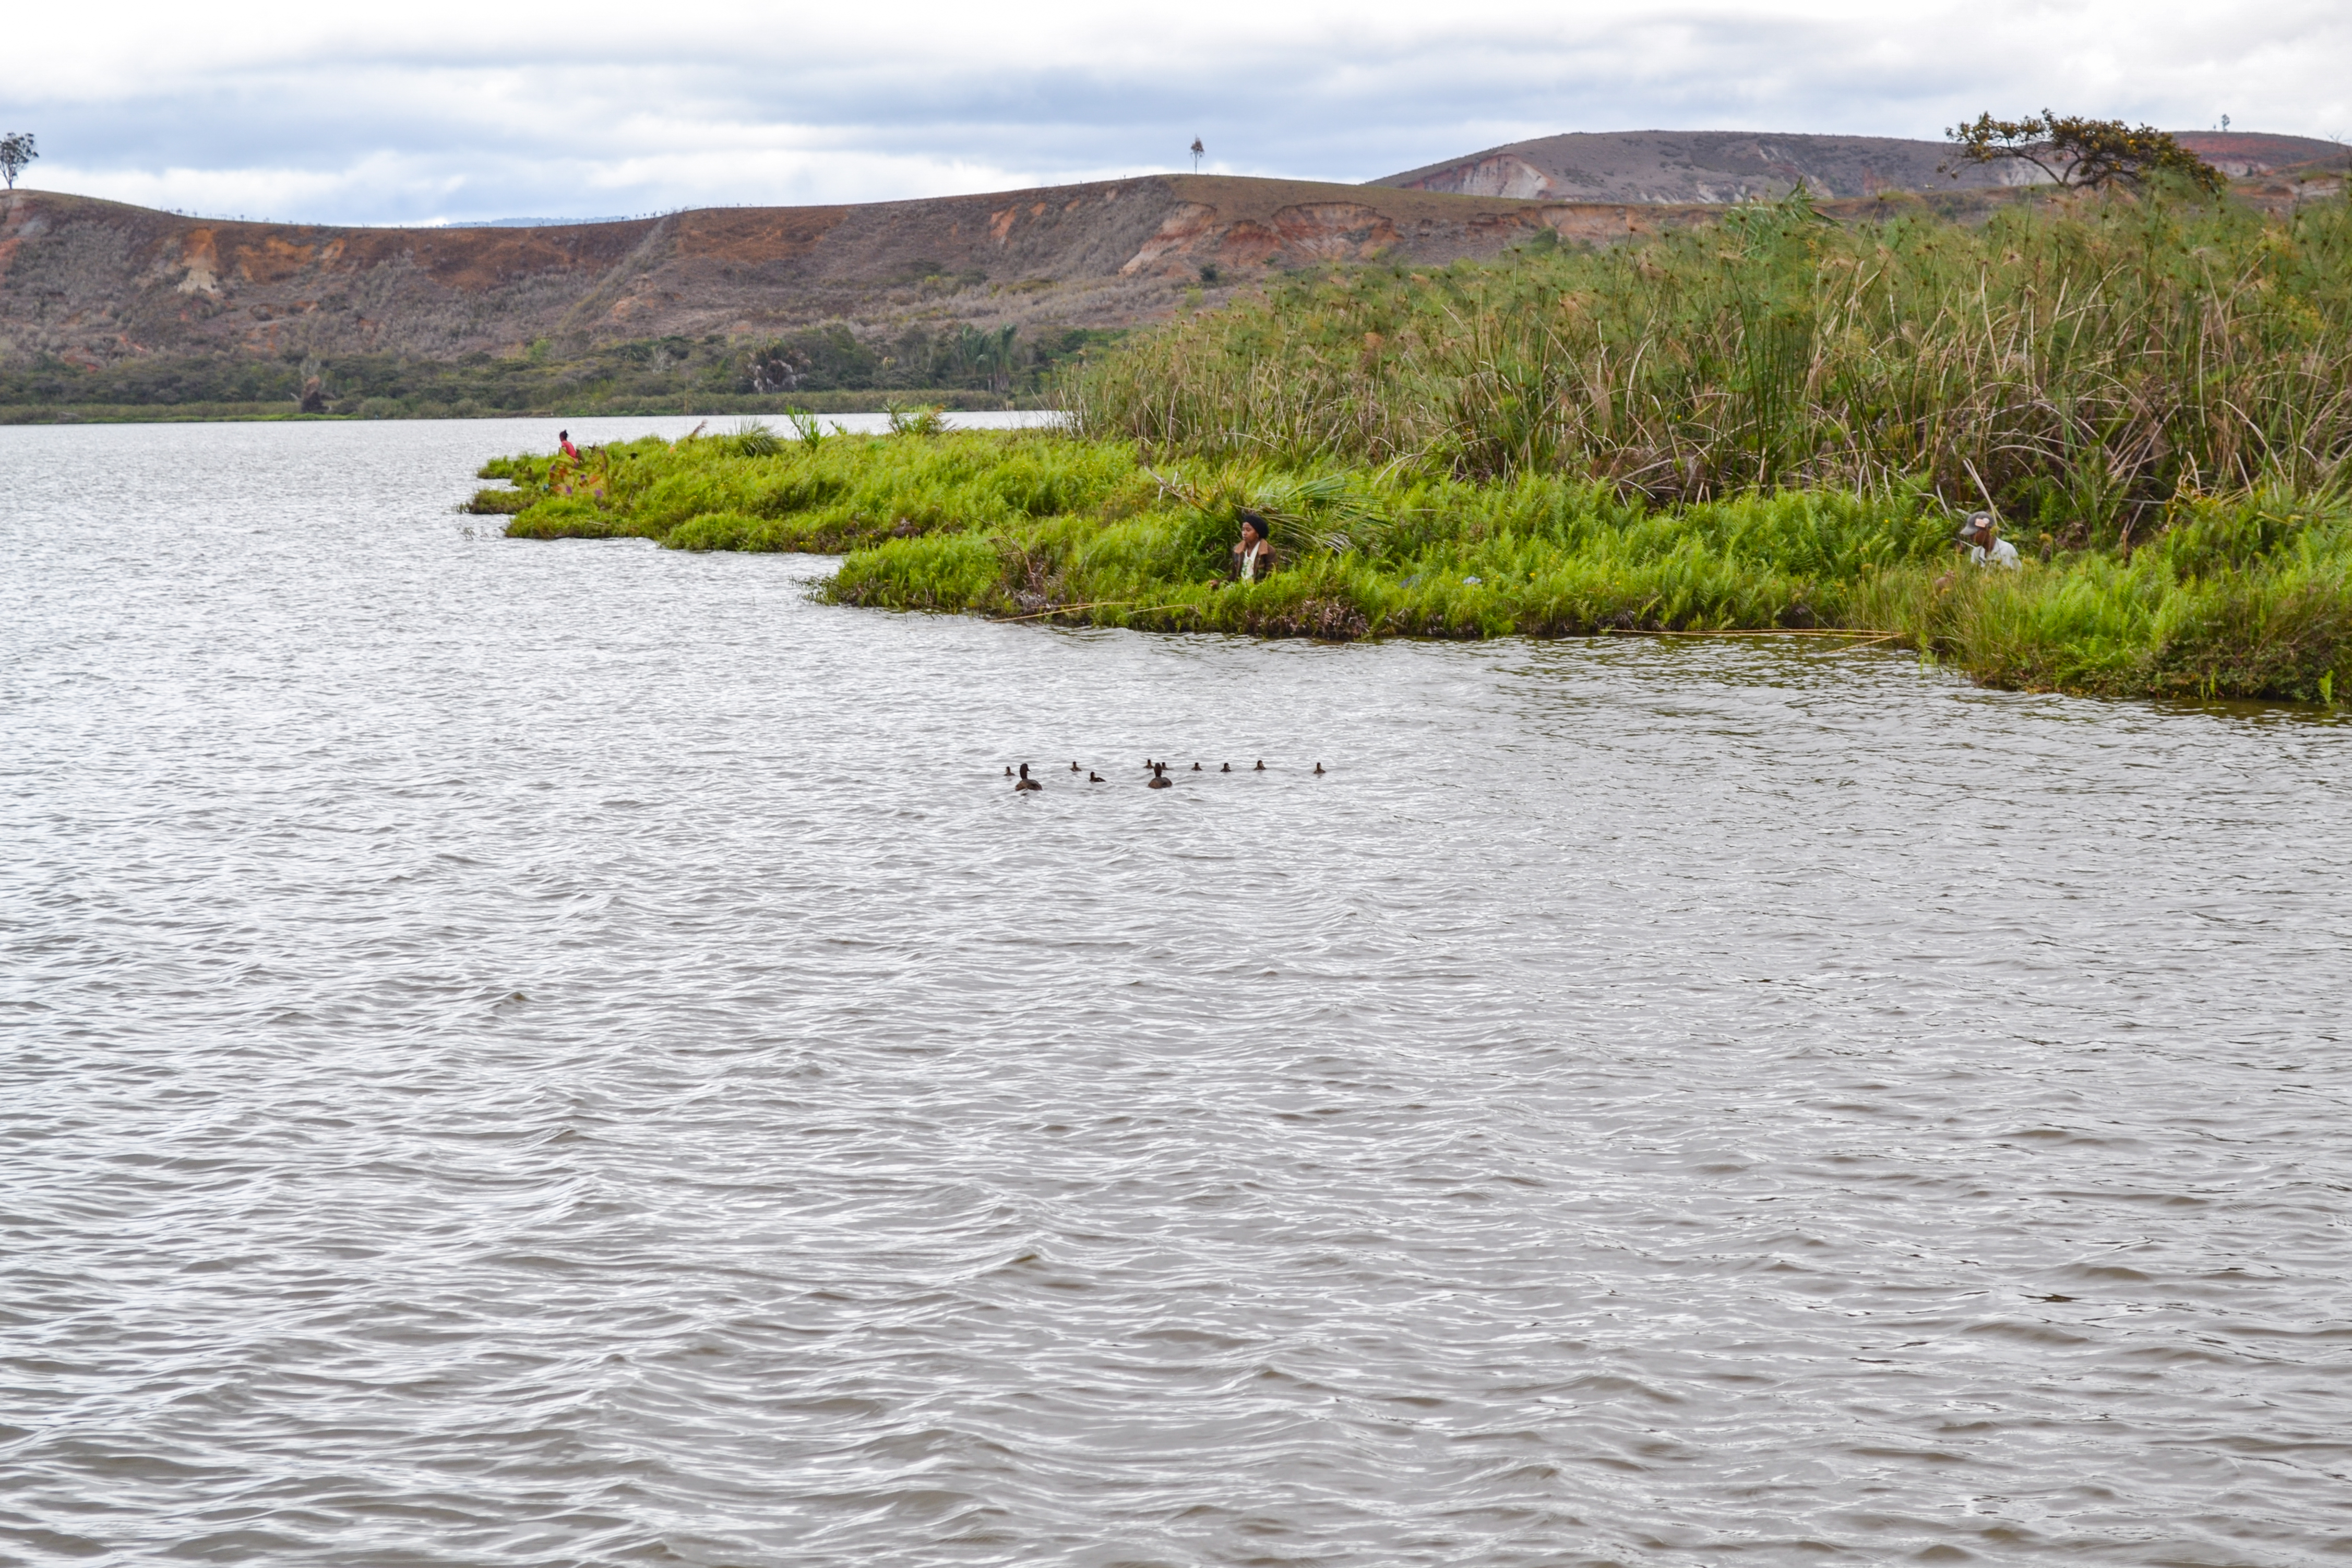 Conservationists are working to improve Lake Sofia for the pochards and local people (Durrell Madagascar/PA)